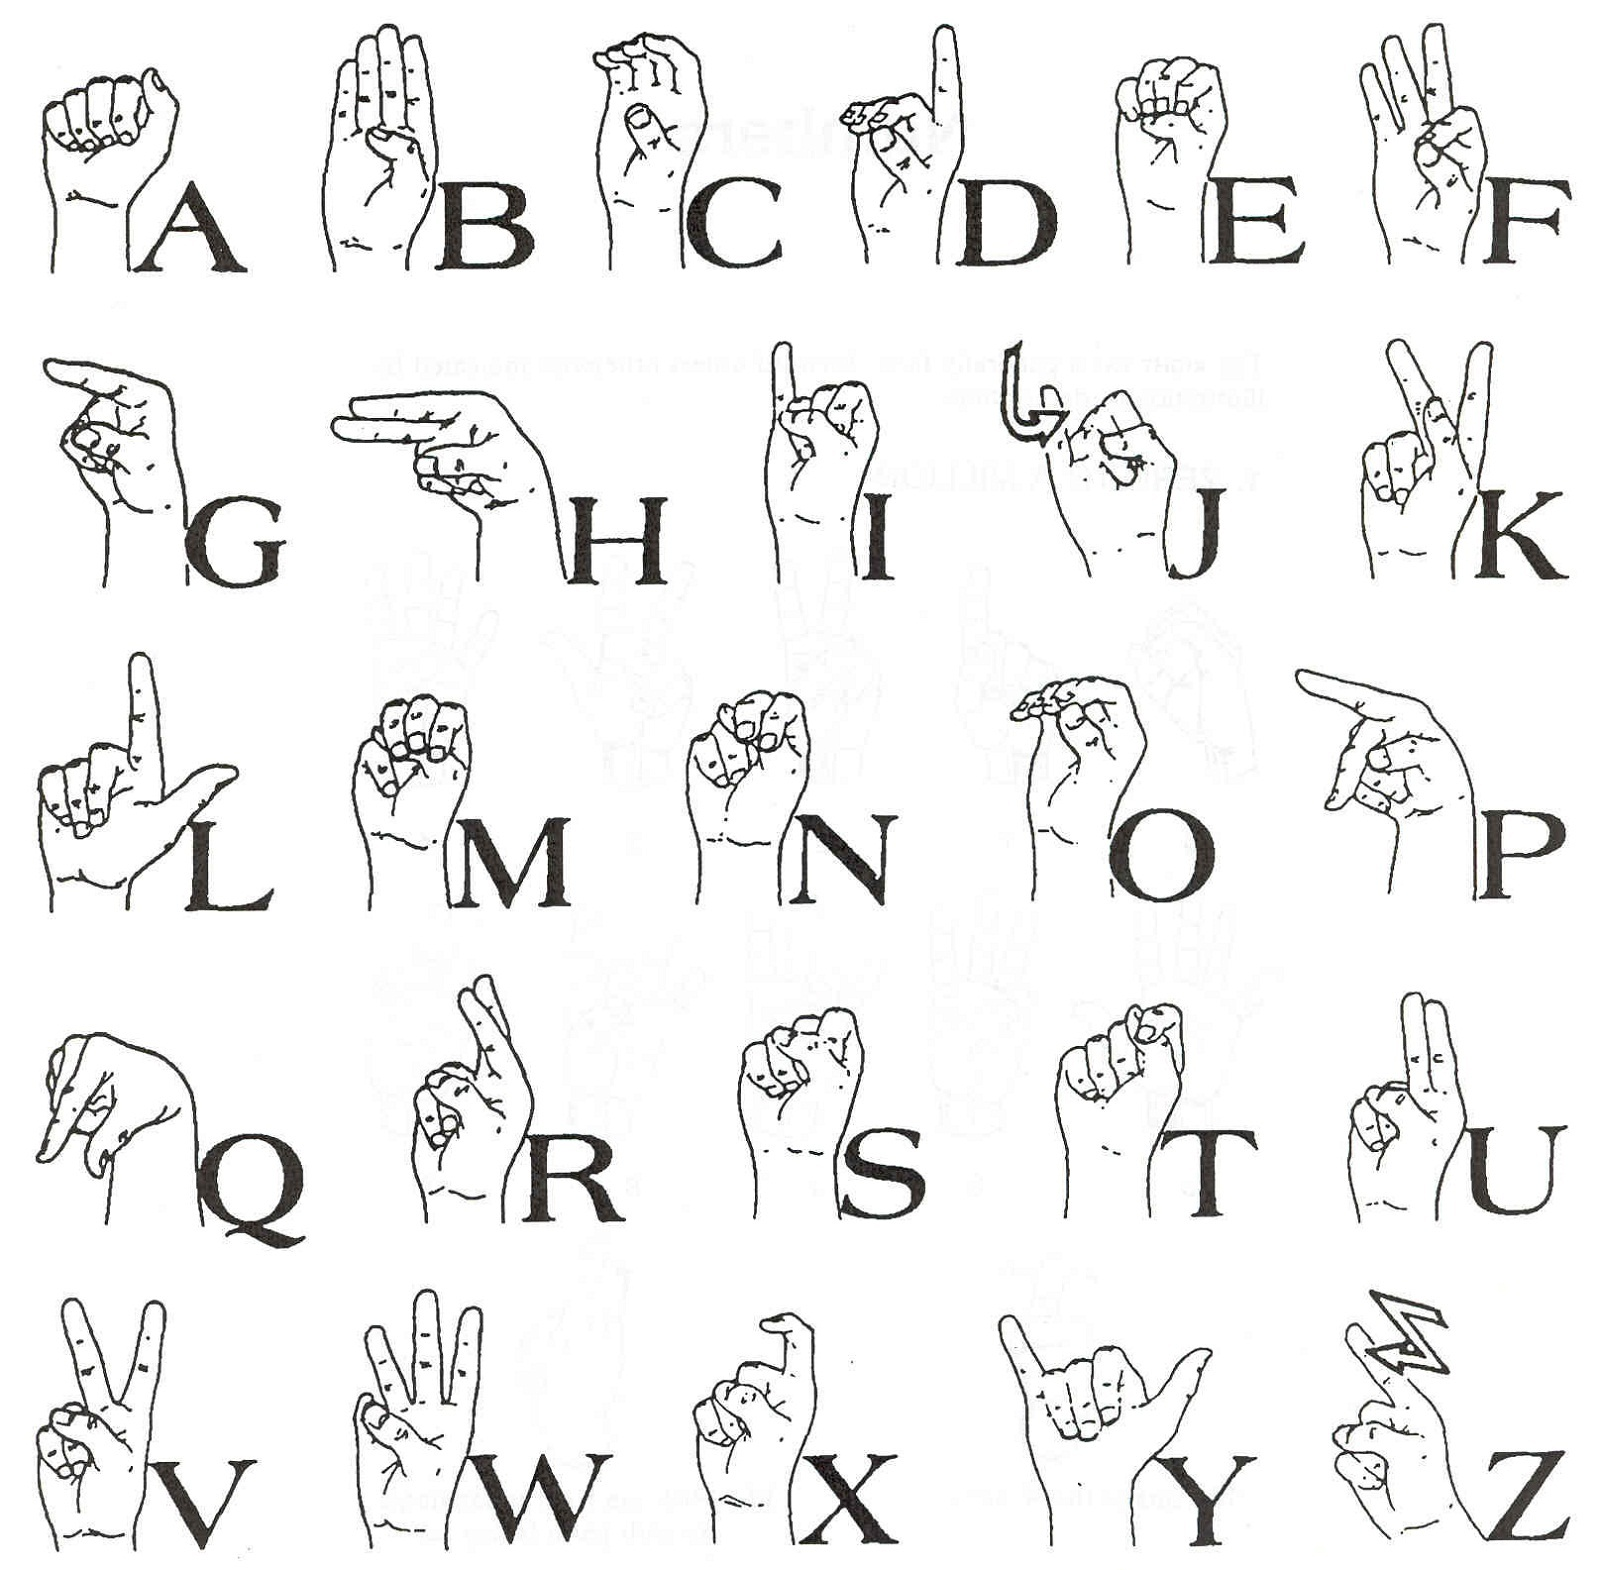 sign Language images 3